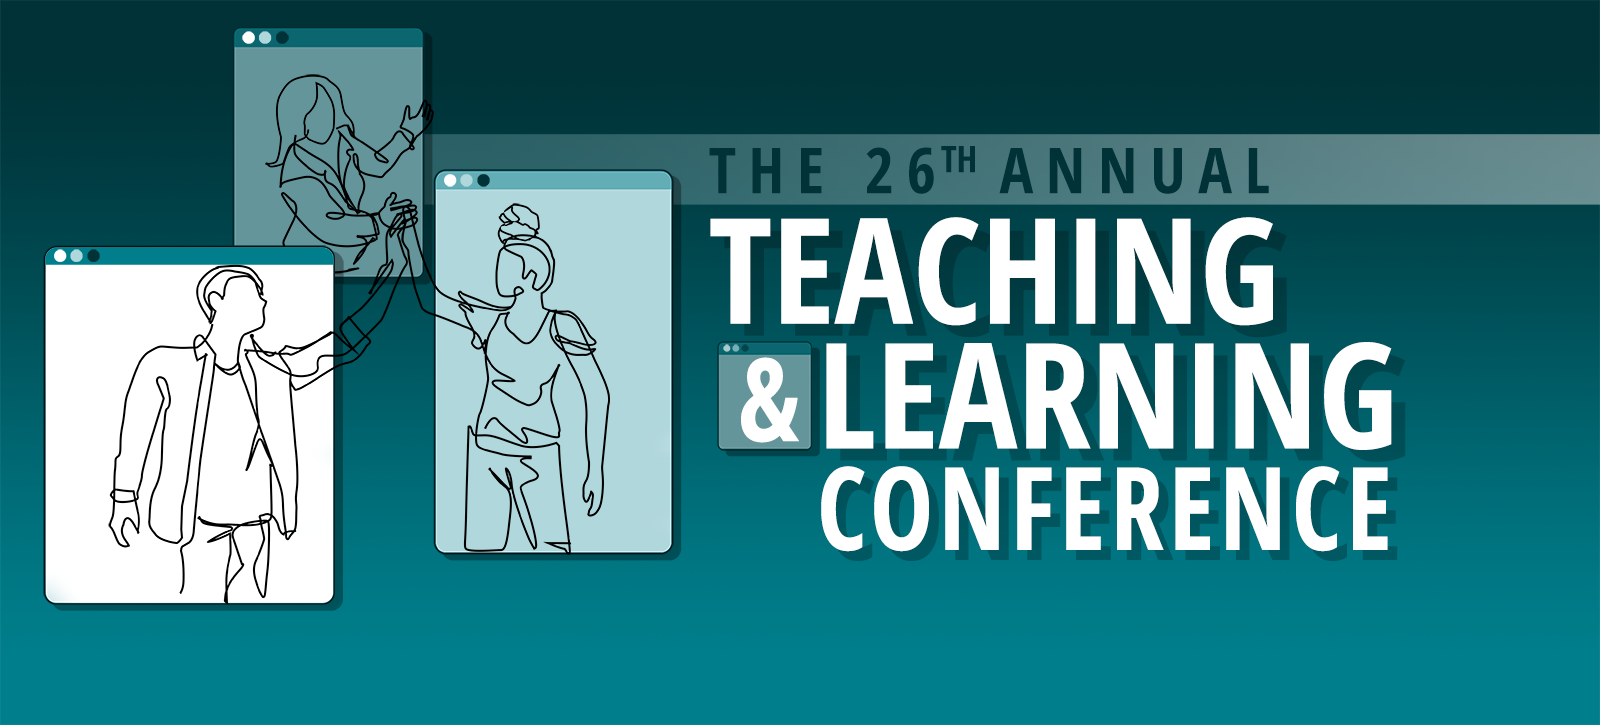 The 26th Annual Teaching and Learning Conference